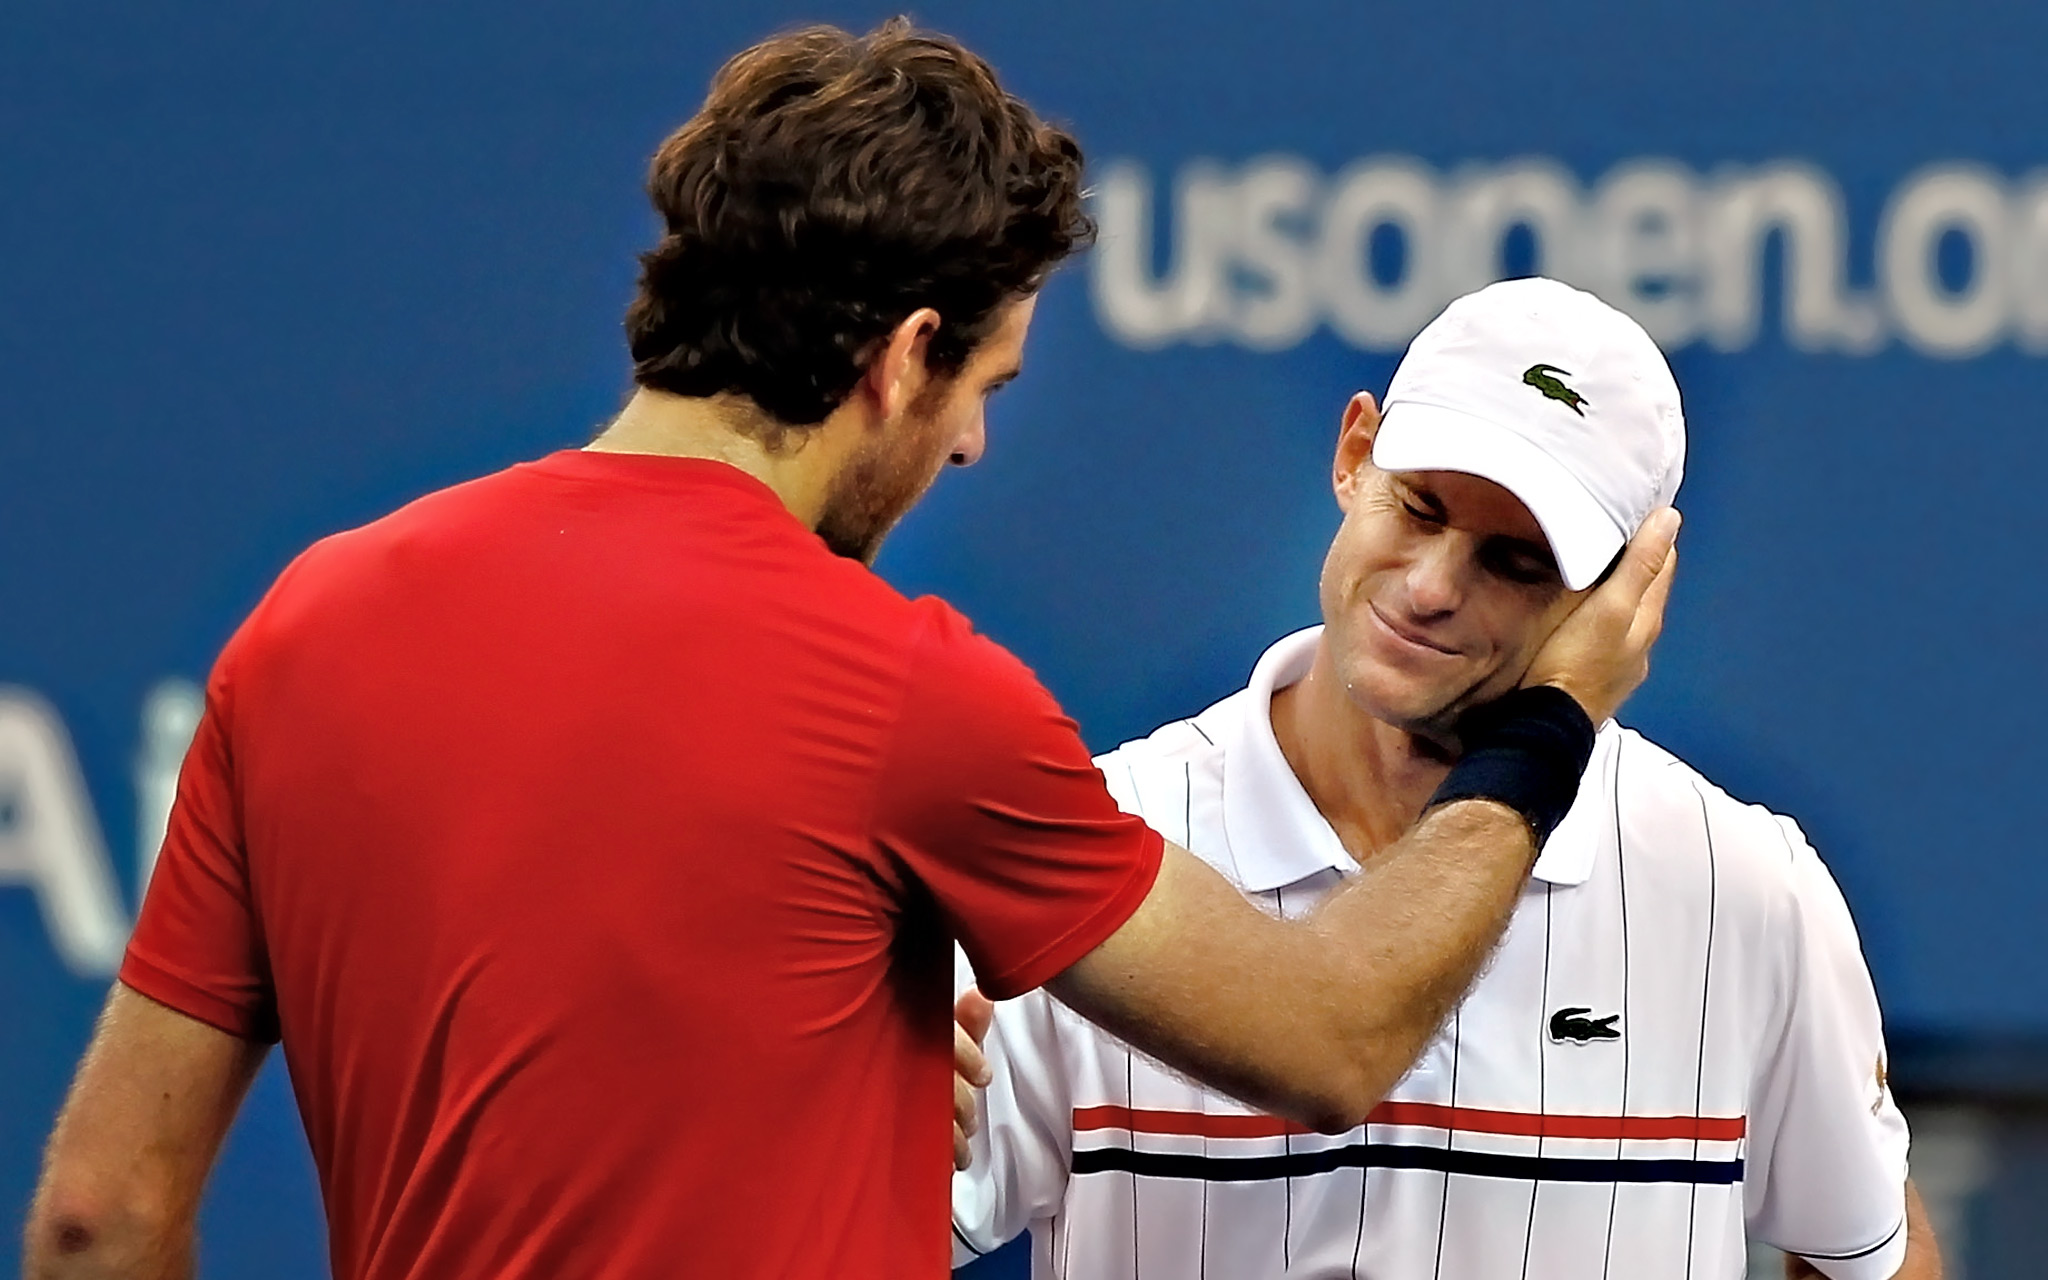 Juan Martin Del Potro and Andy Roddick